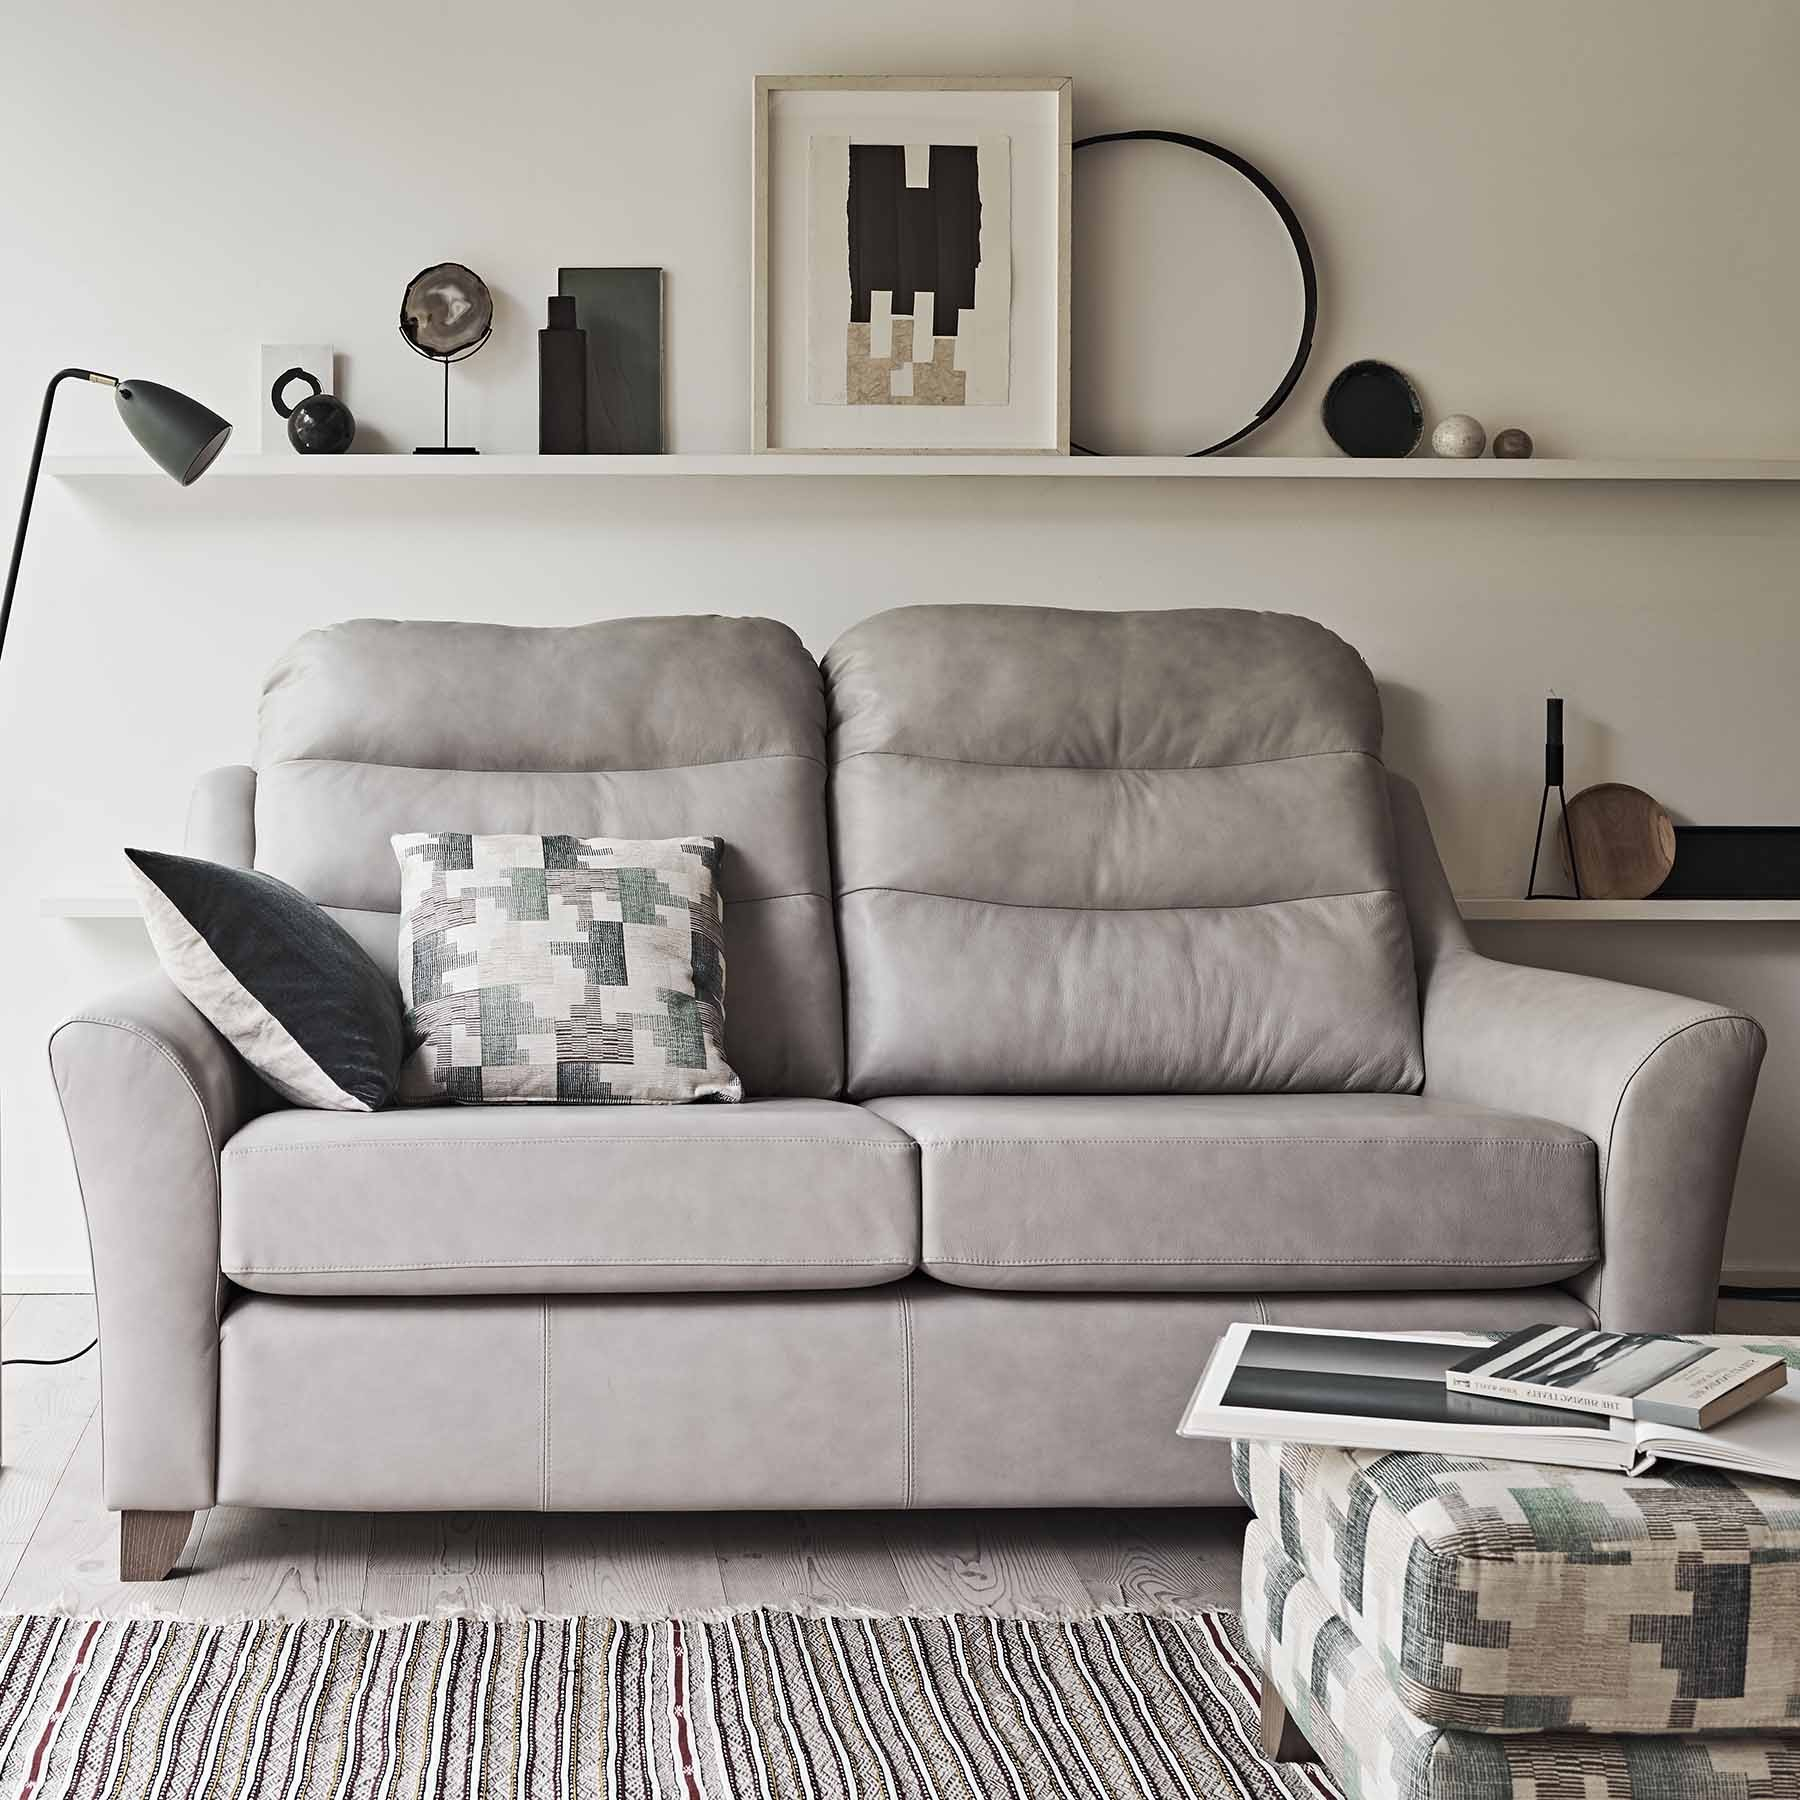 G Plan Tate Leather 3 Seater Sofa | Tr Hayes – Furniture Store, Bath With Regard To Tate Arm Sofa Chairs (Image 8 of 20)